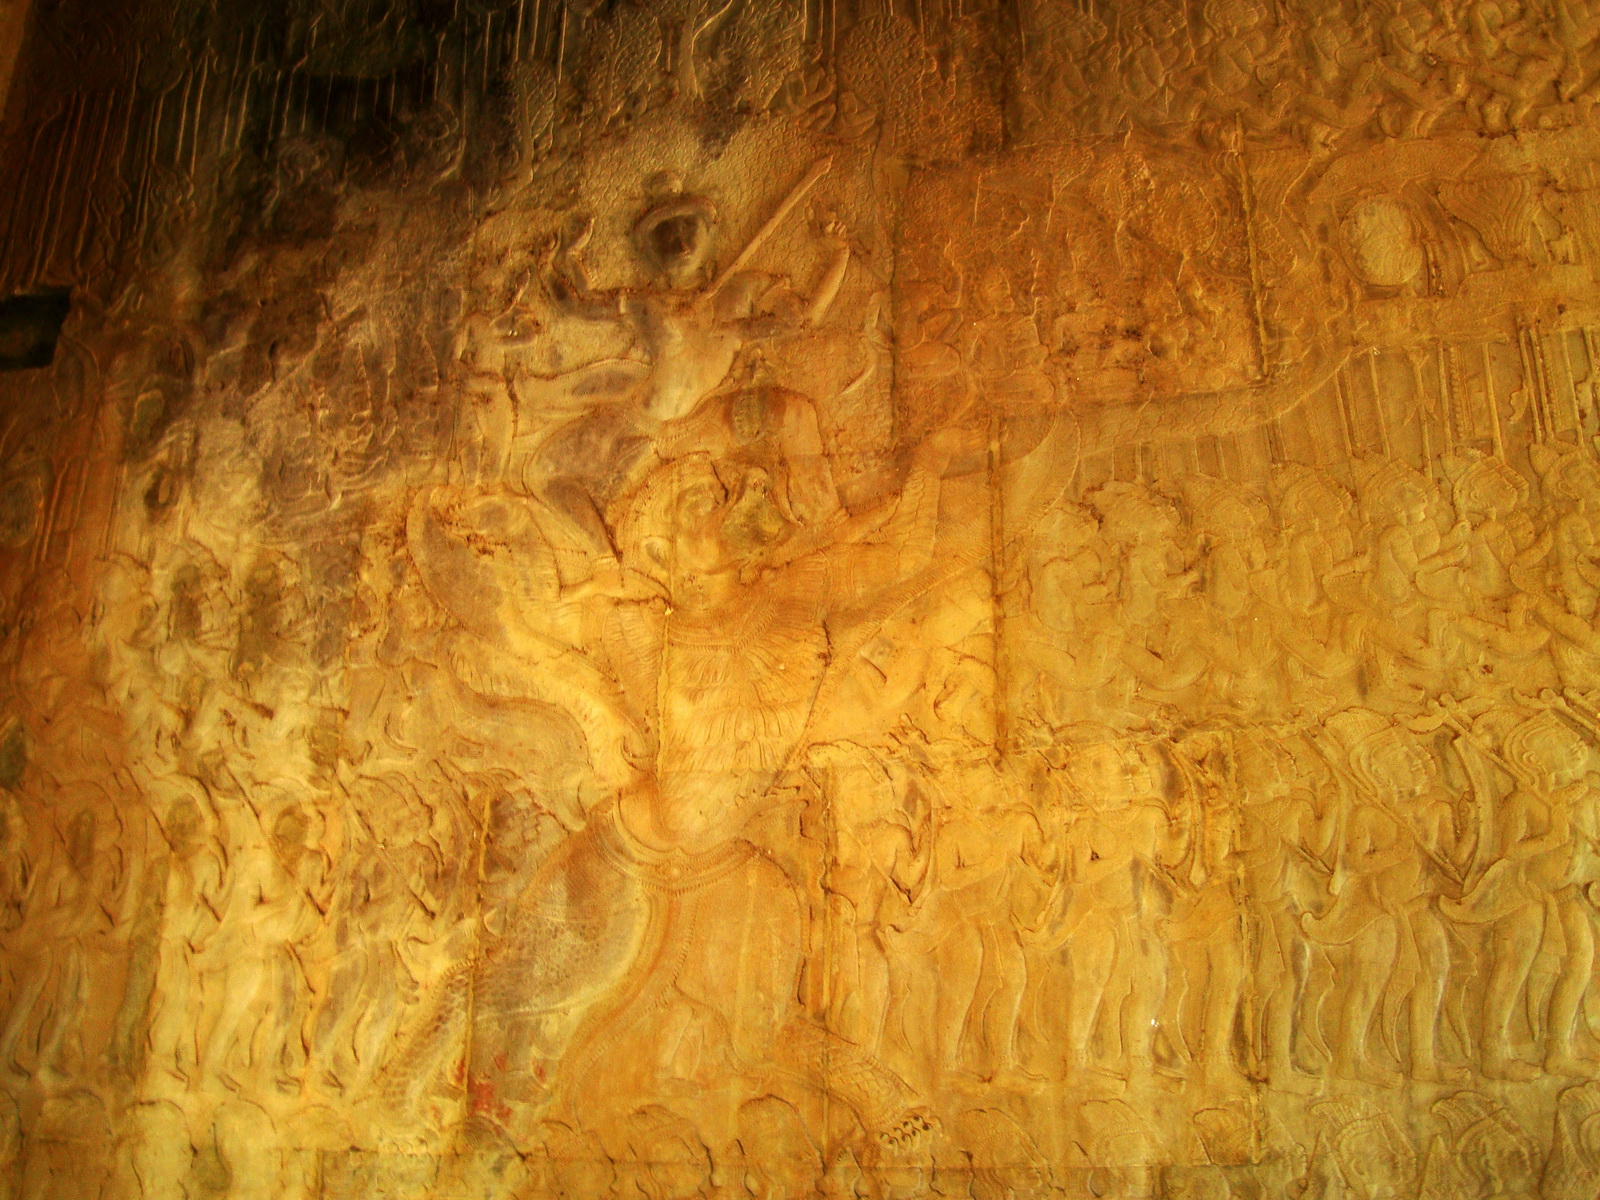 Angkor Wat Bas relief N Gallery W Wing Battle of Devas and Asuras 05